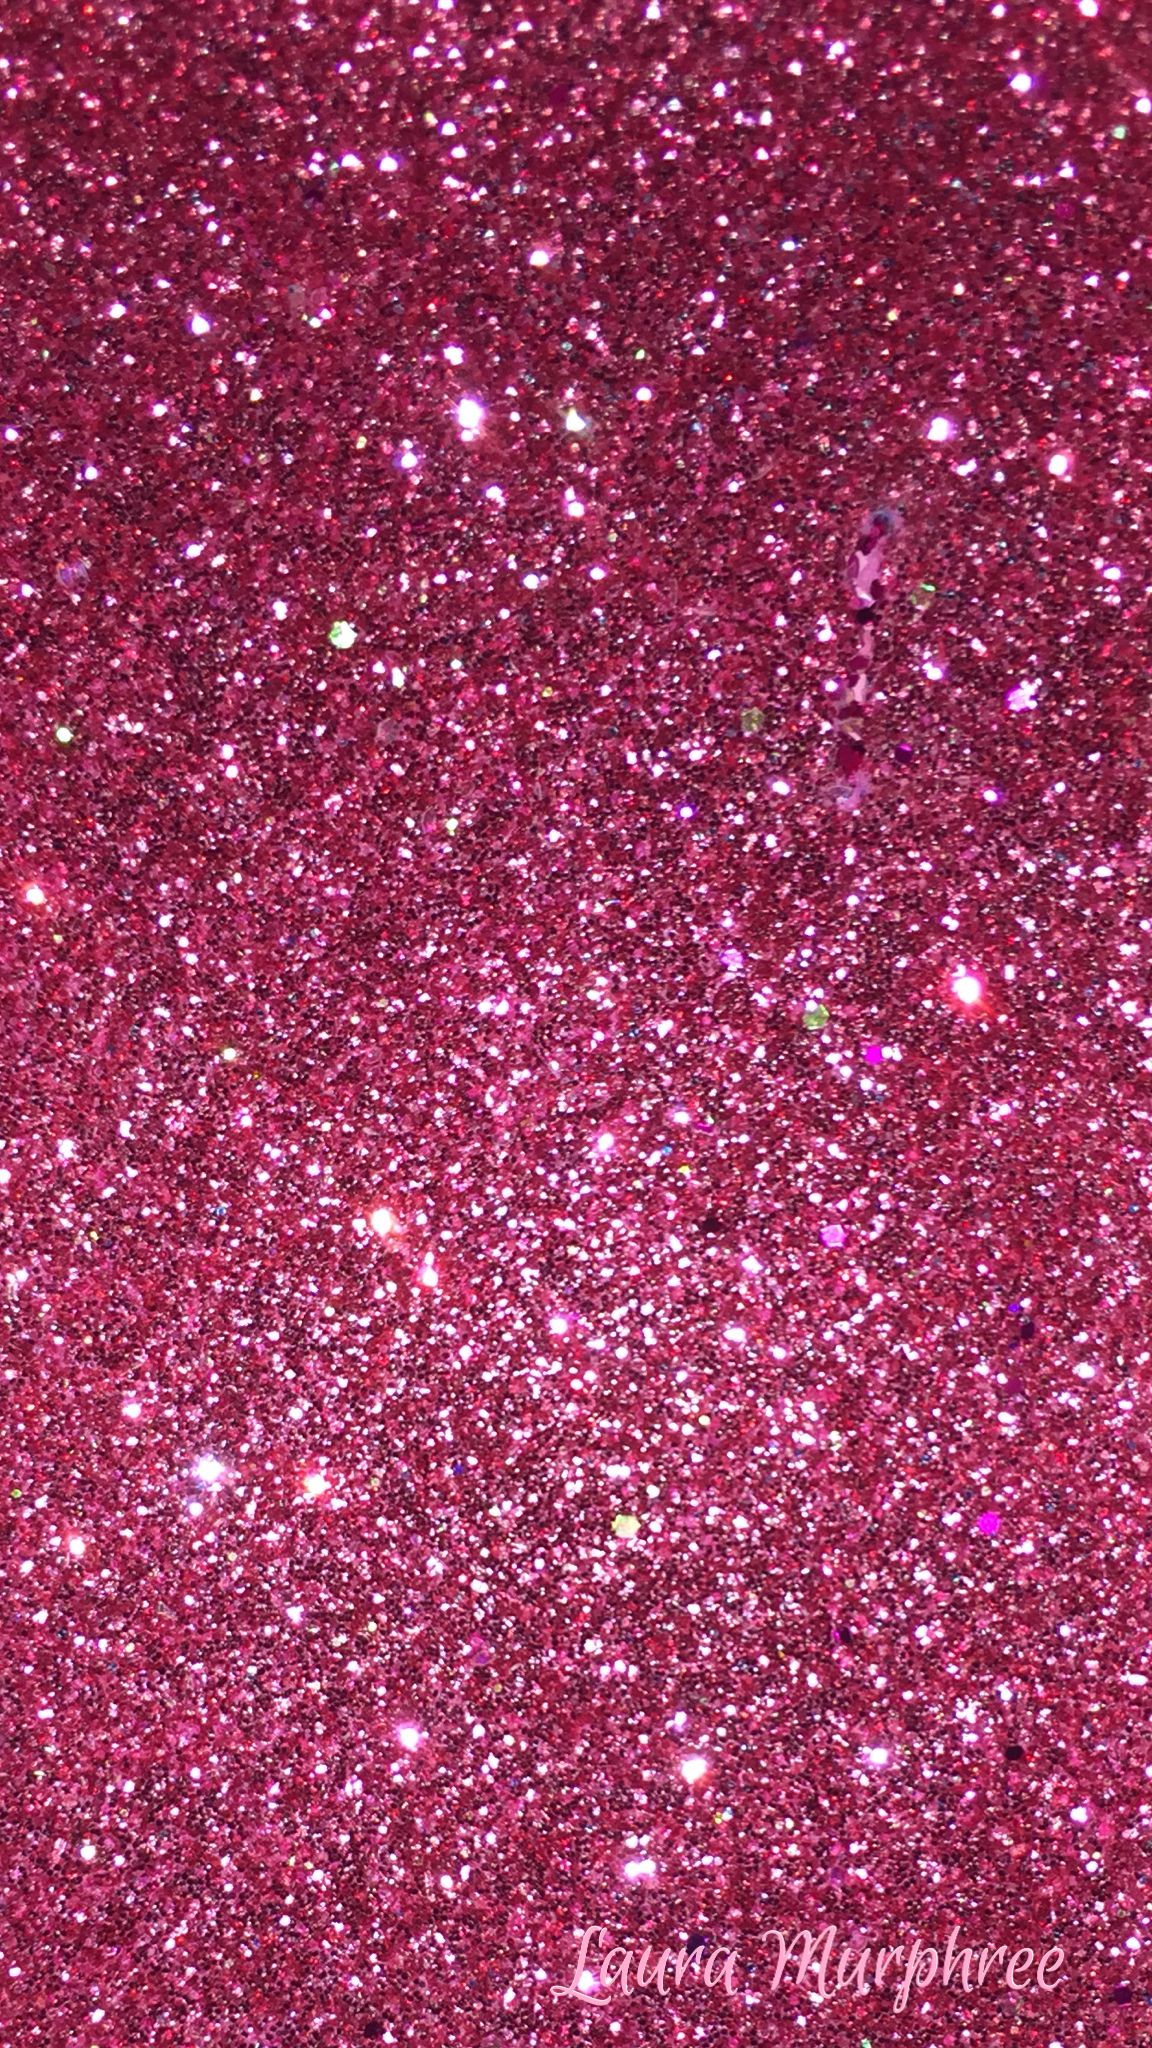 Glitter Phone Wallpaper Pink Sparkle Background Girly Pretty Hot Pink Zastavka Iskry Blestyashie Oboi Rozovye Blestki